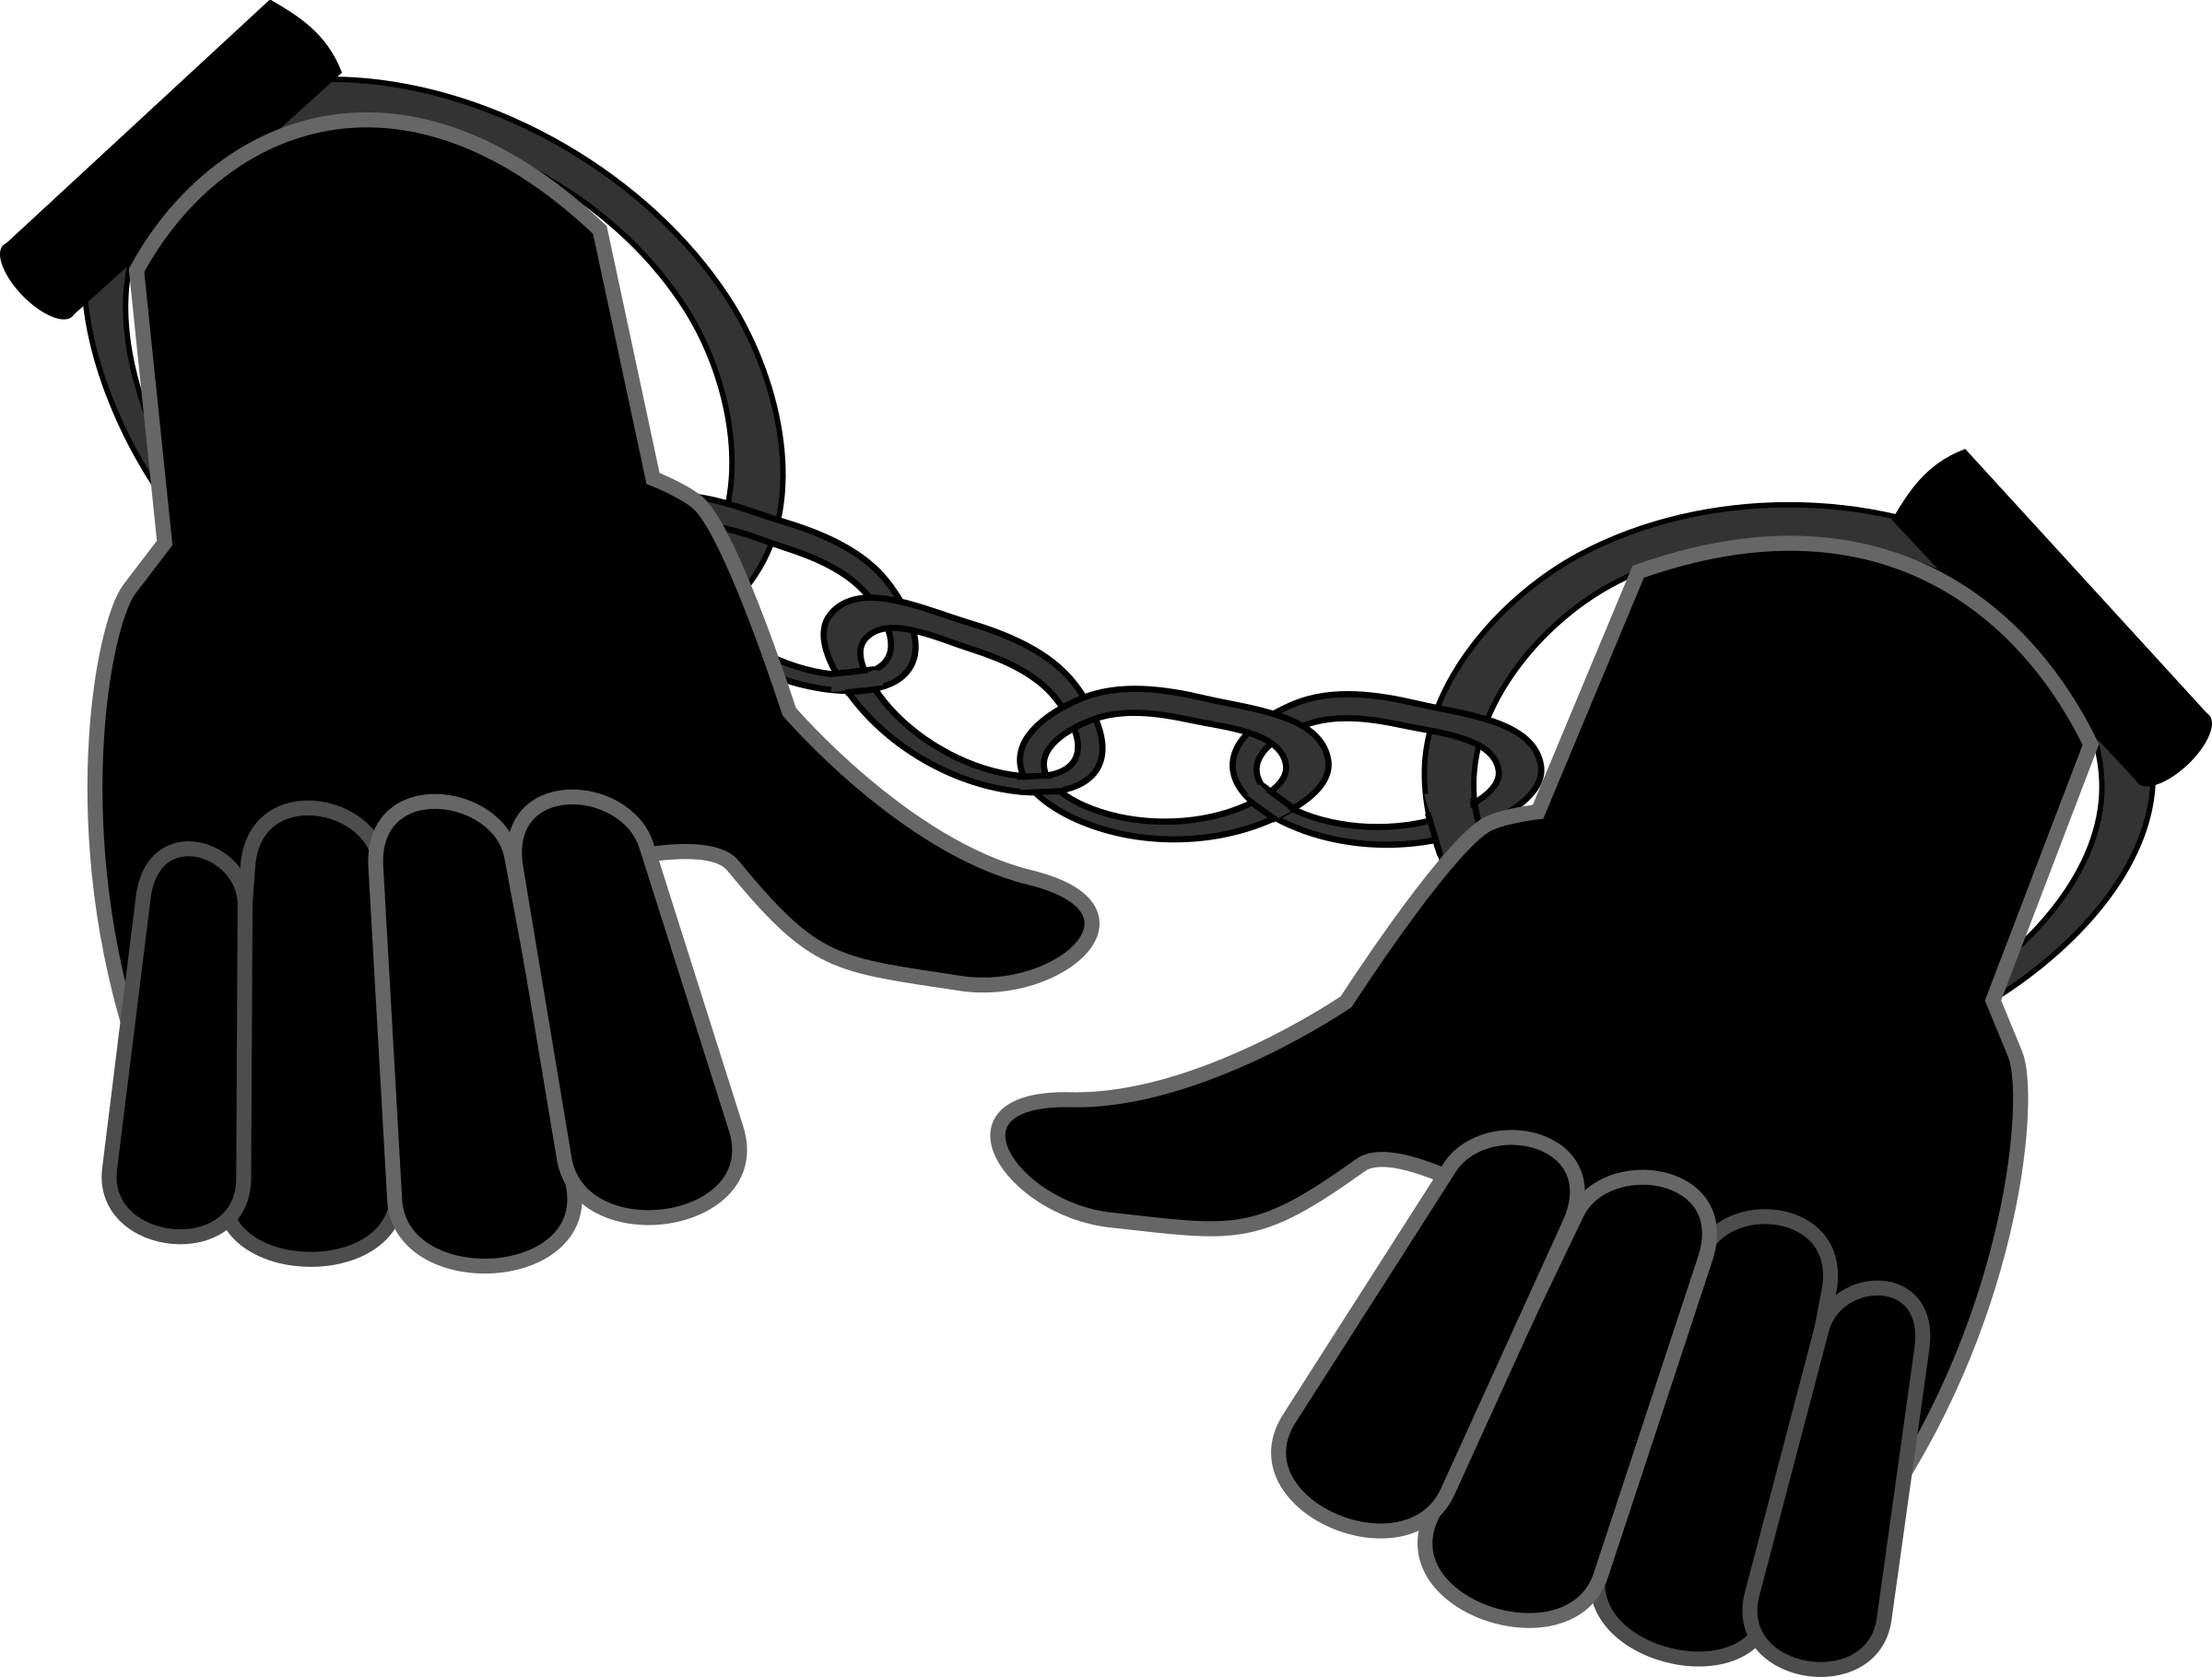 Handcuffs clipart shackles. Gallery clip art picture